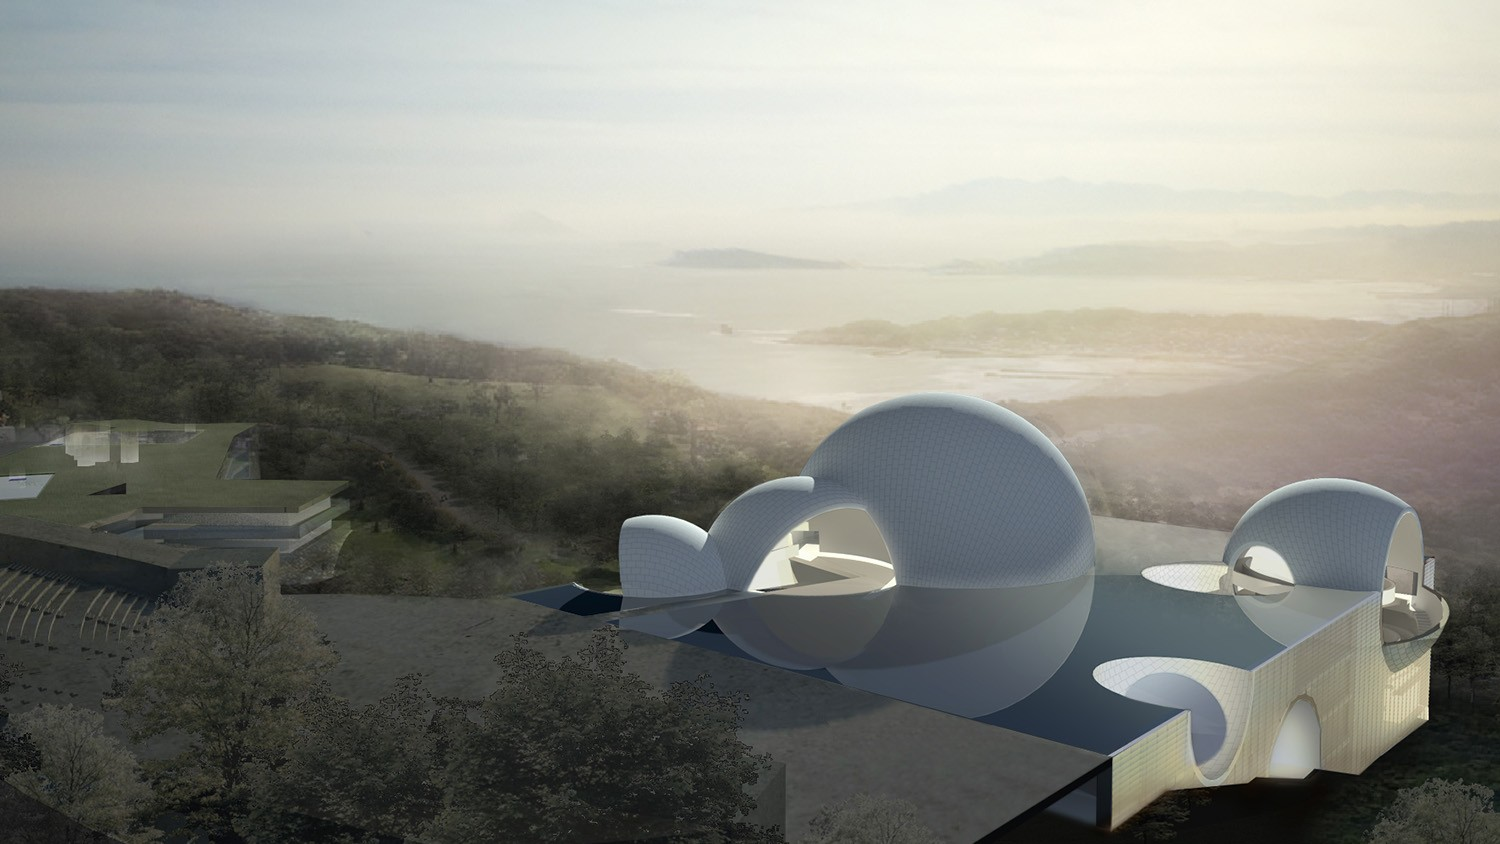 https://s3.us-east-2.amazonaws.com/steven-holl/uploads/projects/project-images/StevenHollArchitects_Necropolis_SHA_07_oceanic-exterior-viewNEW_WH.jpg